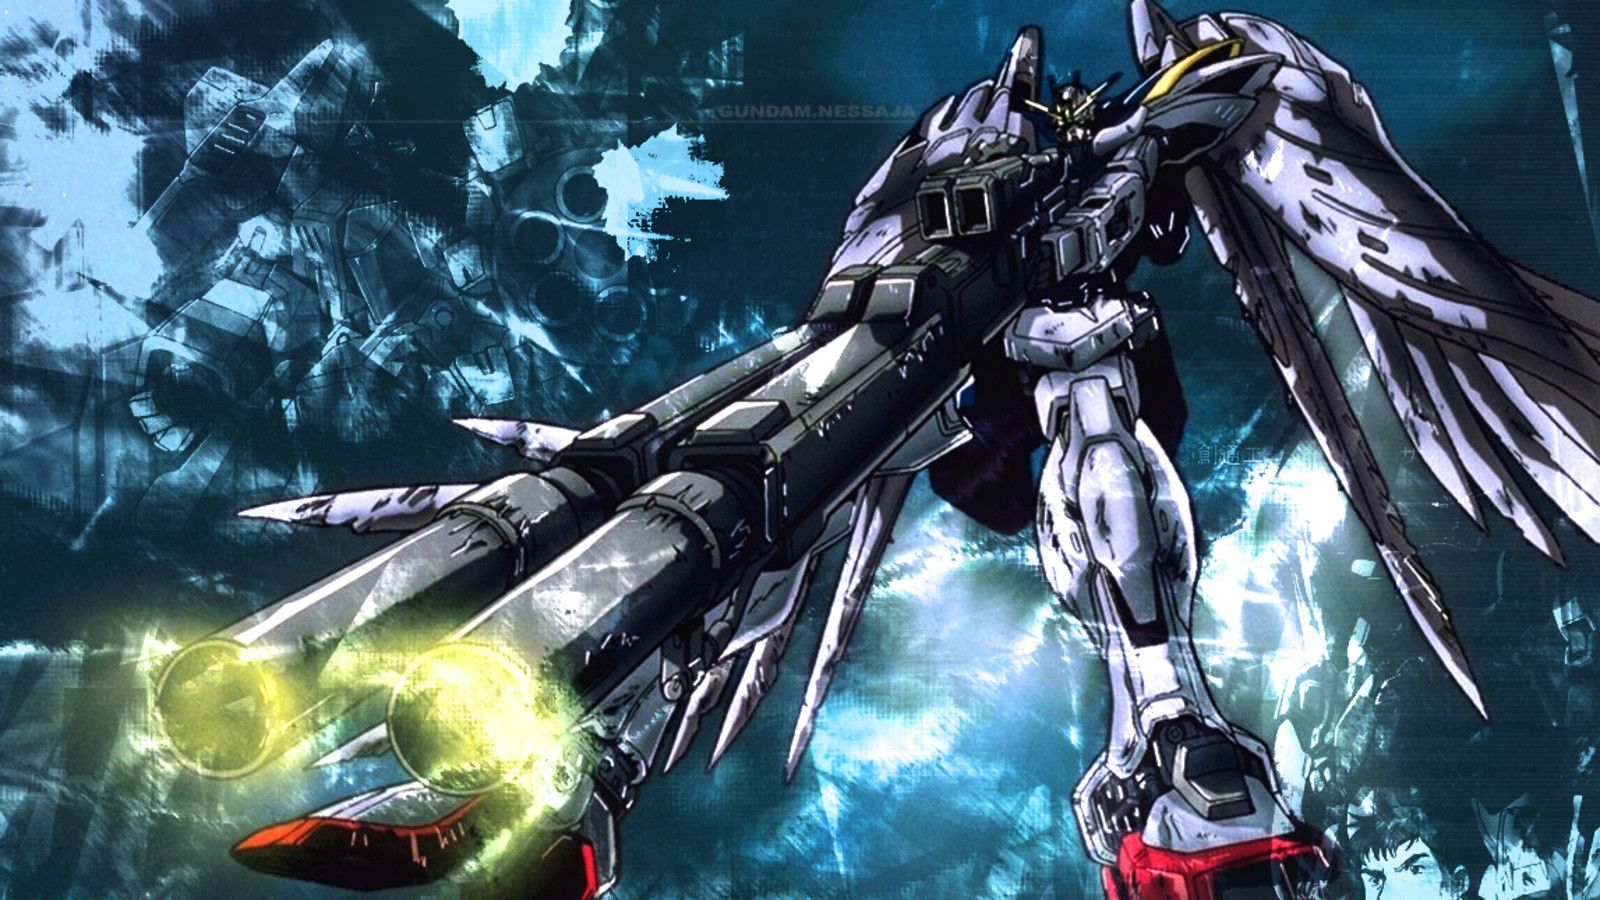 Best Gundam Wing Wallpaper HQ Backgrounds HD wallpapers Gallery 1600x900